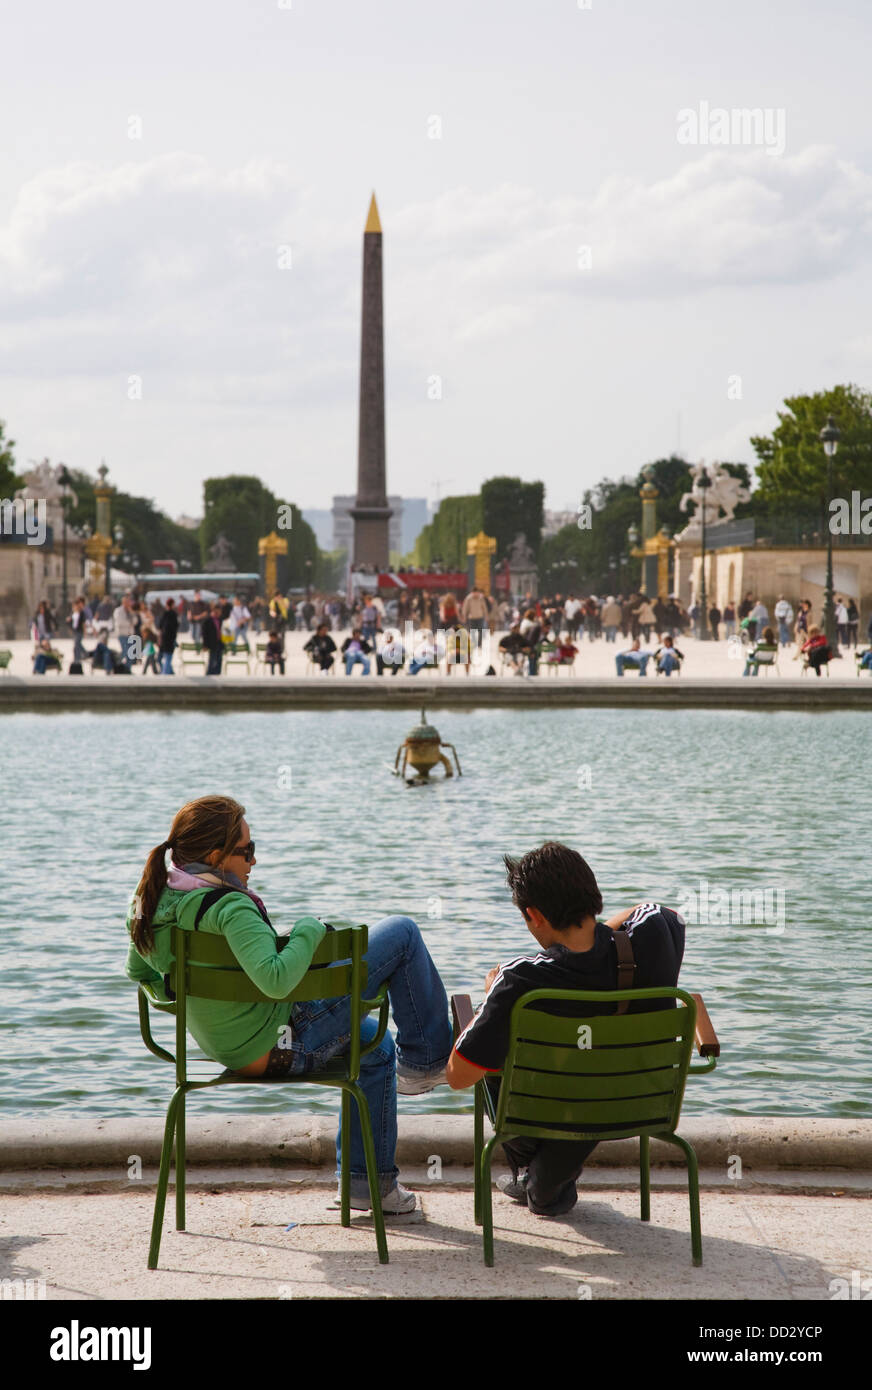 A couple sit in Jardin des Tuileries in front of Luxor Obelisk, Paris, France - Stock Image